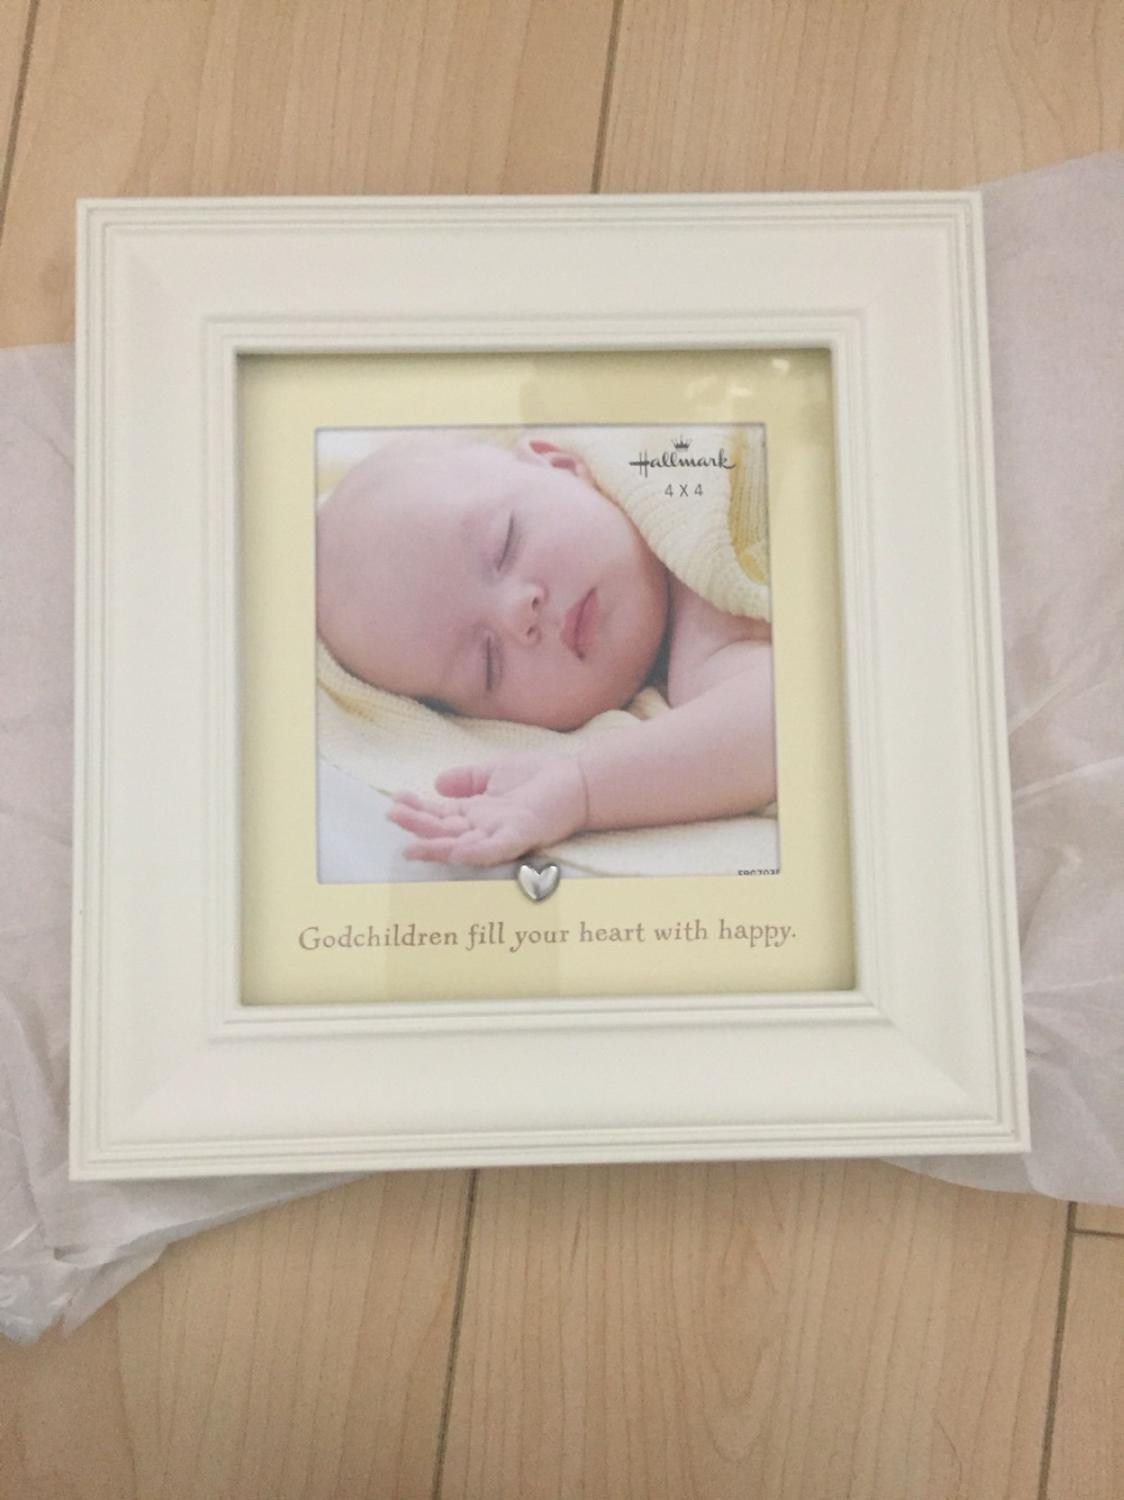 Find more Bnib Hallmark Godchild 4x4 Picture Frame for sale at up to ...